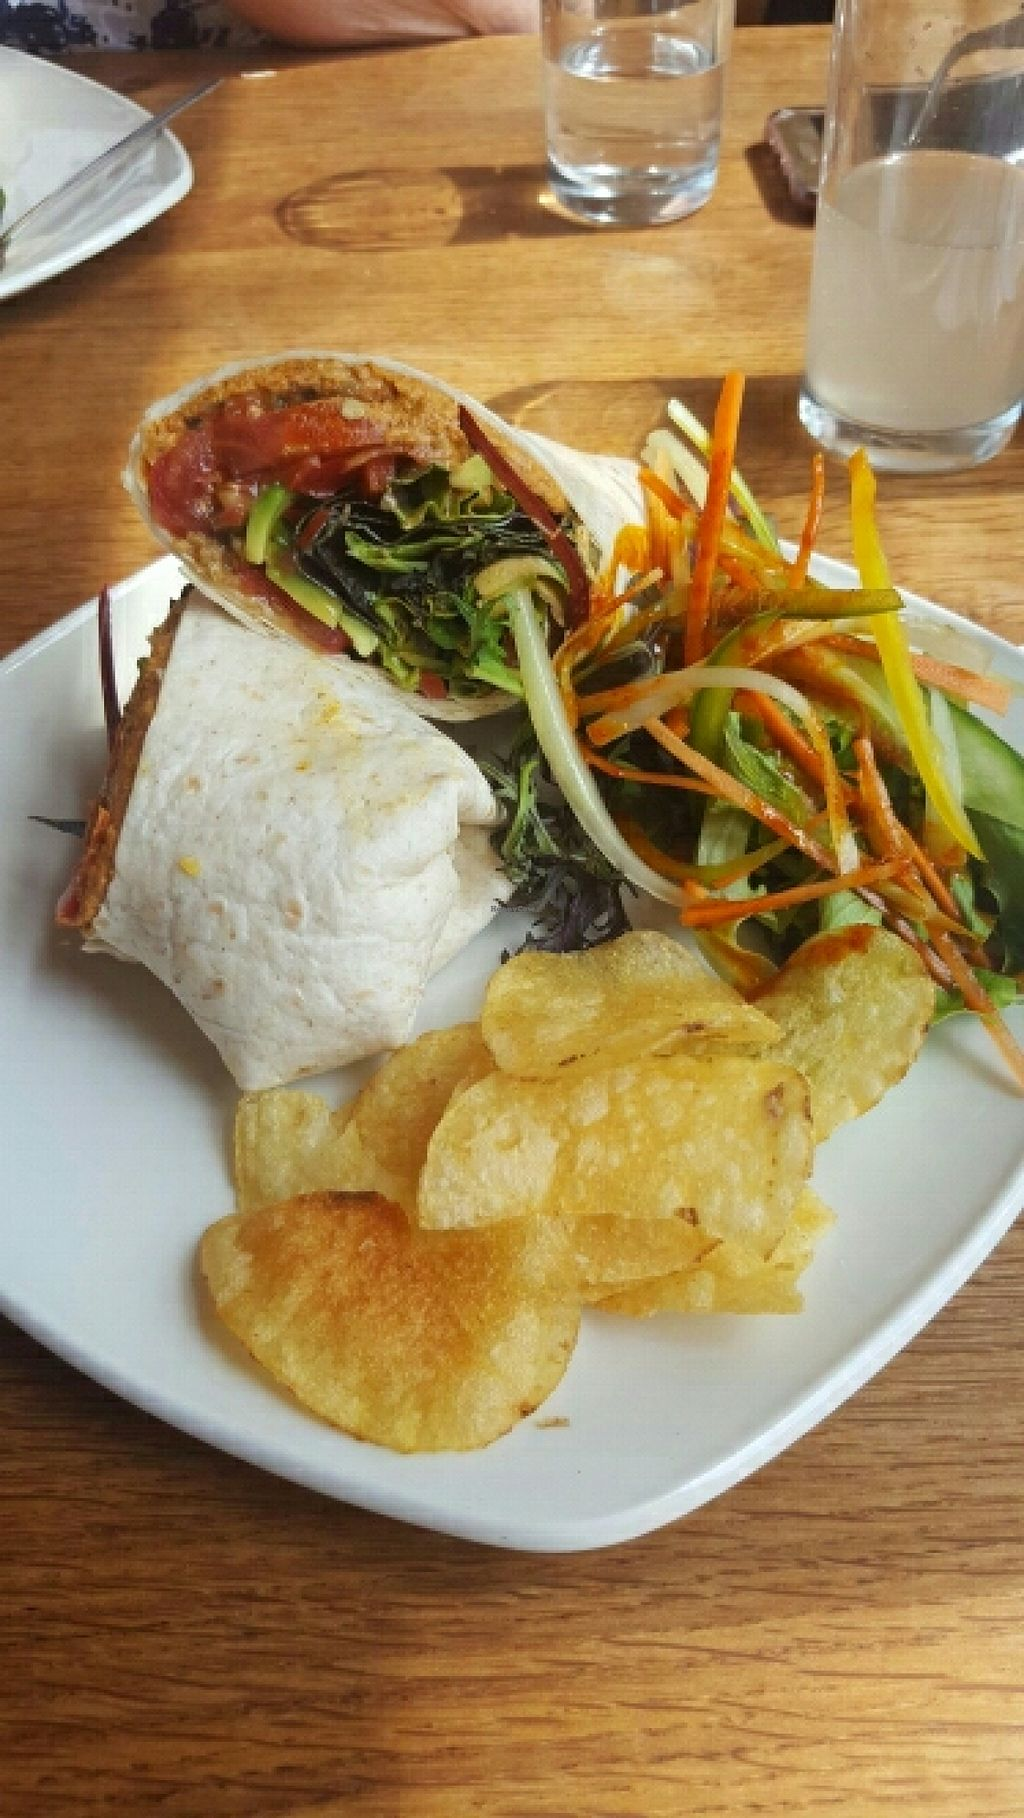 """Photo of The Beech Cafe  by <a href=""""/members/profile/Gupalsmurthpadacal"""">Gupalsmurthpadacal</a> <br/>hummus and olive wrap (vegan option) <br/> May 7, 2016  - <a href='/contact/abuse/image/23171/147851'>Report</a>"""